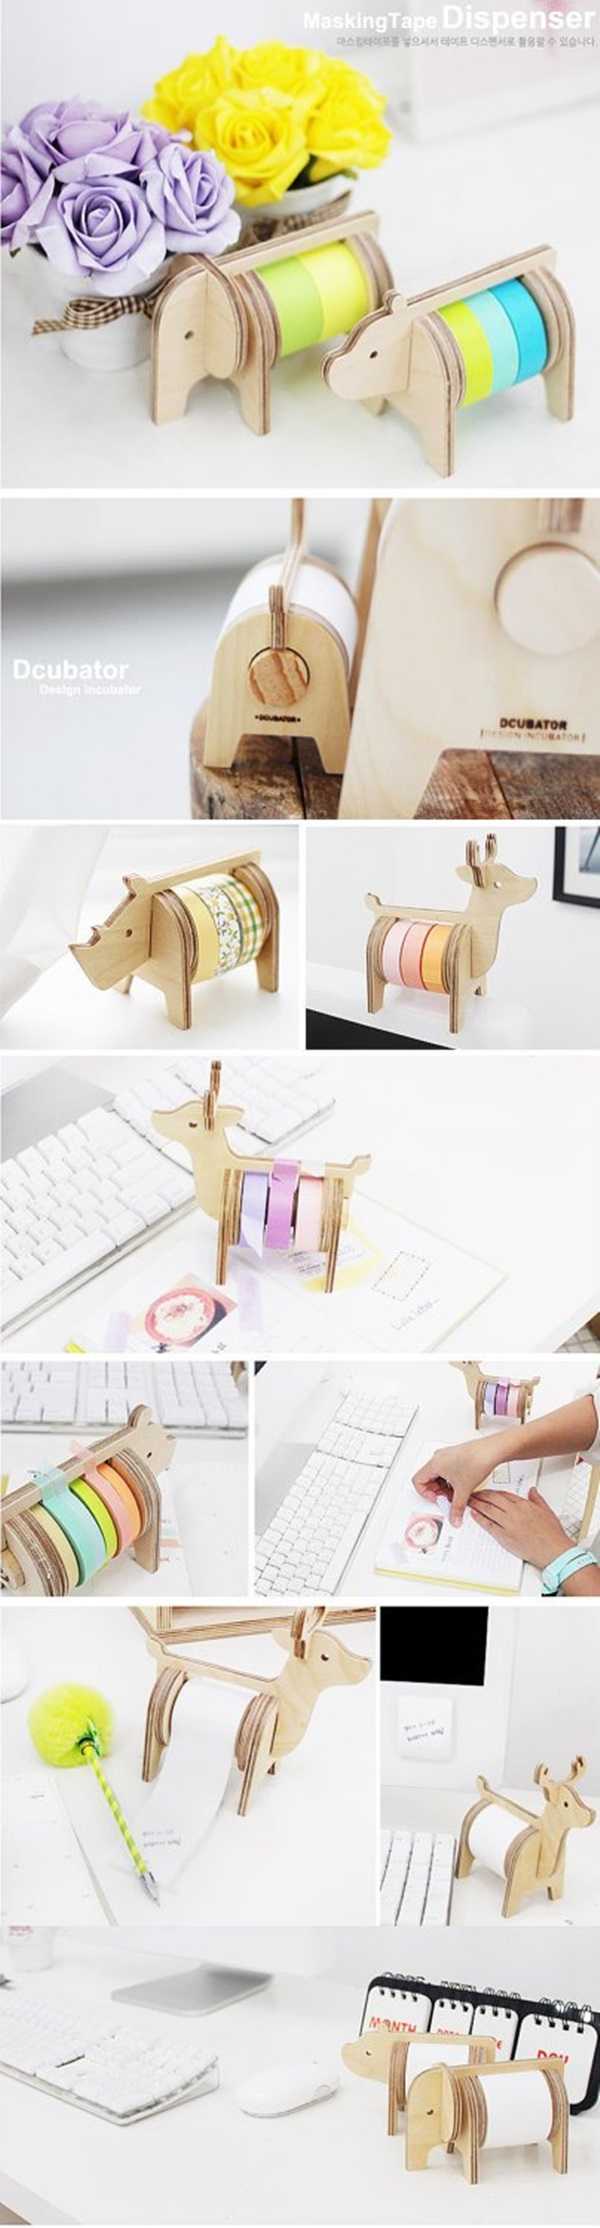 8 Animal Shaped Objects that will Appeal Everyone 3